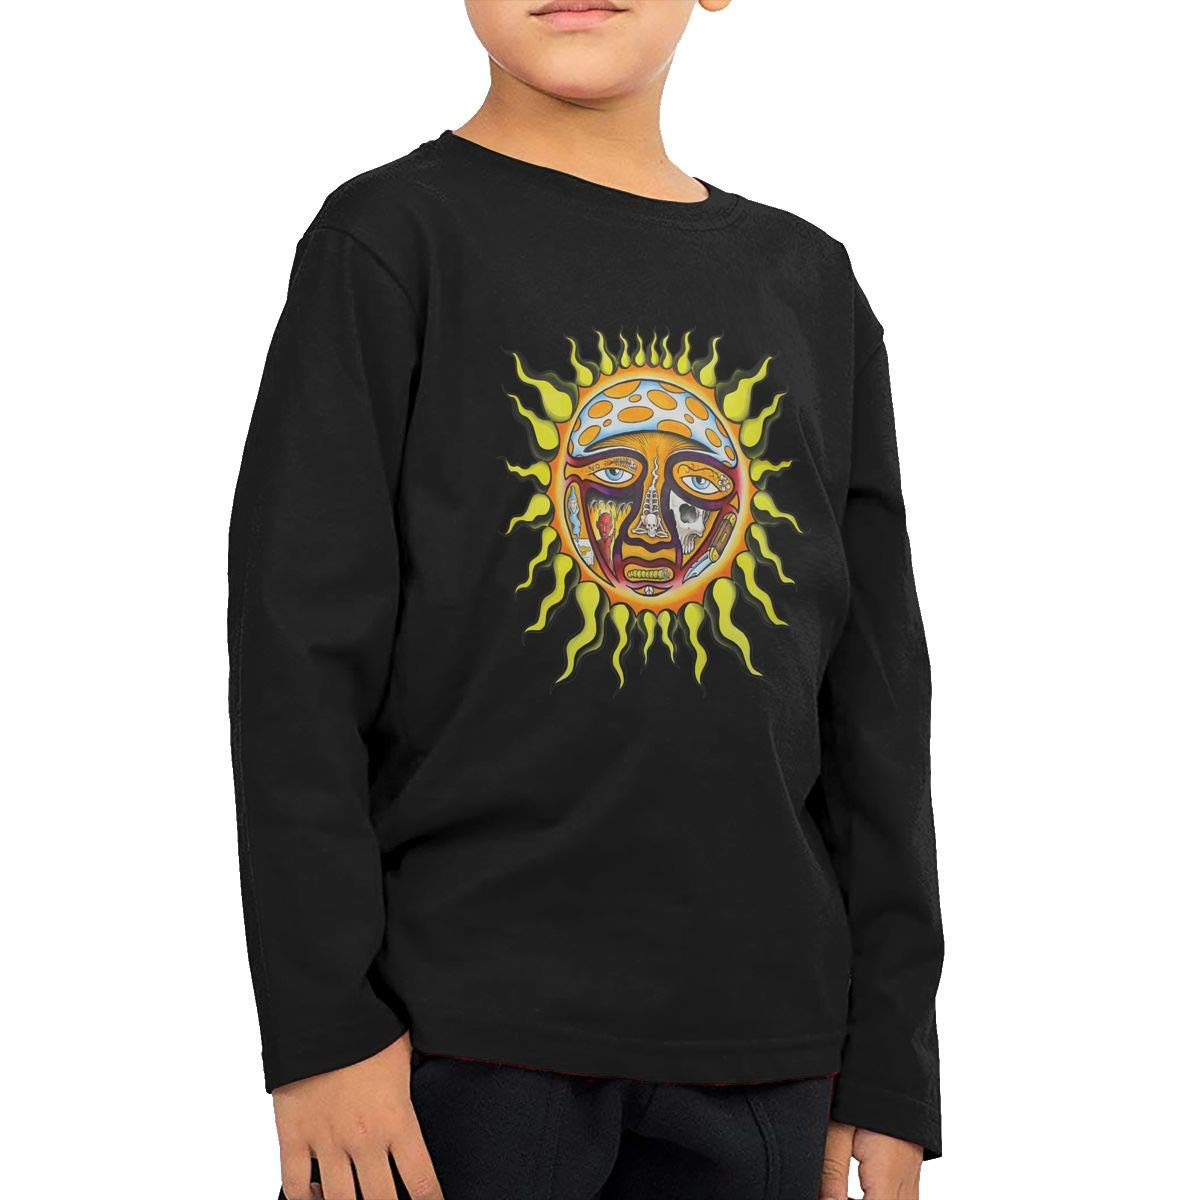 The Story of Sublimes Iconic Sun Logo Childrens Personalized Long-Sleeved T Shirts Cotton Round Collar Shirt